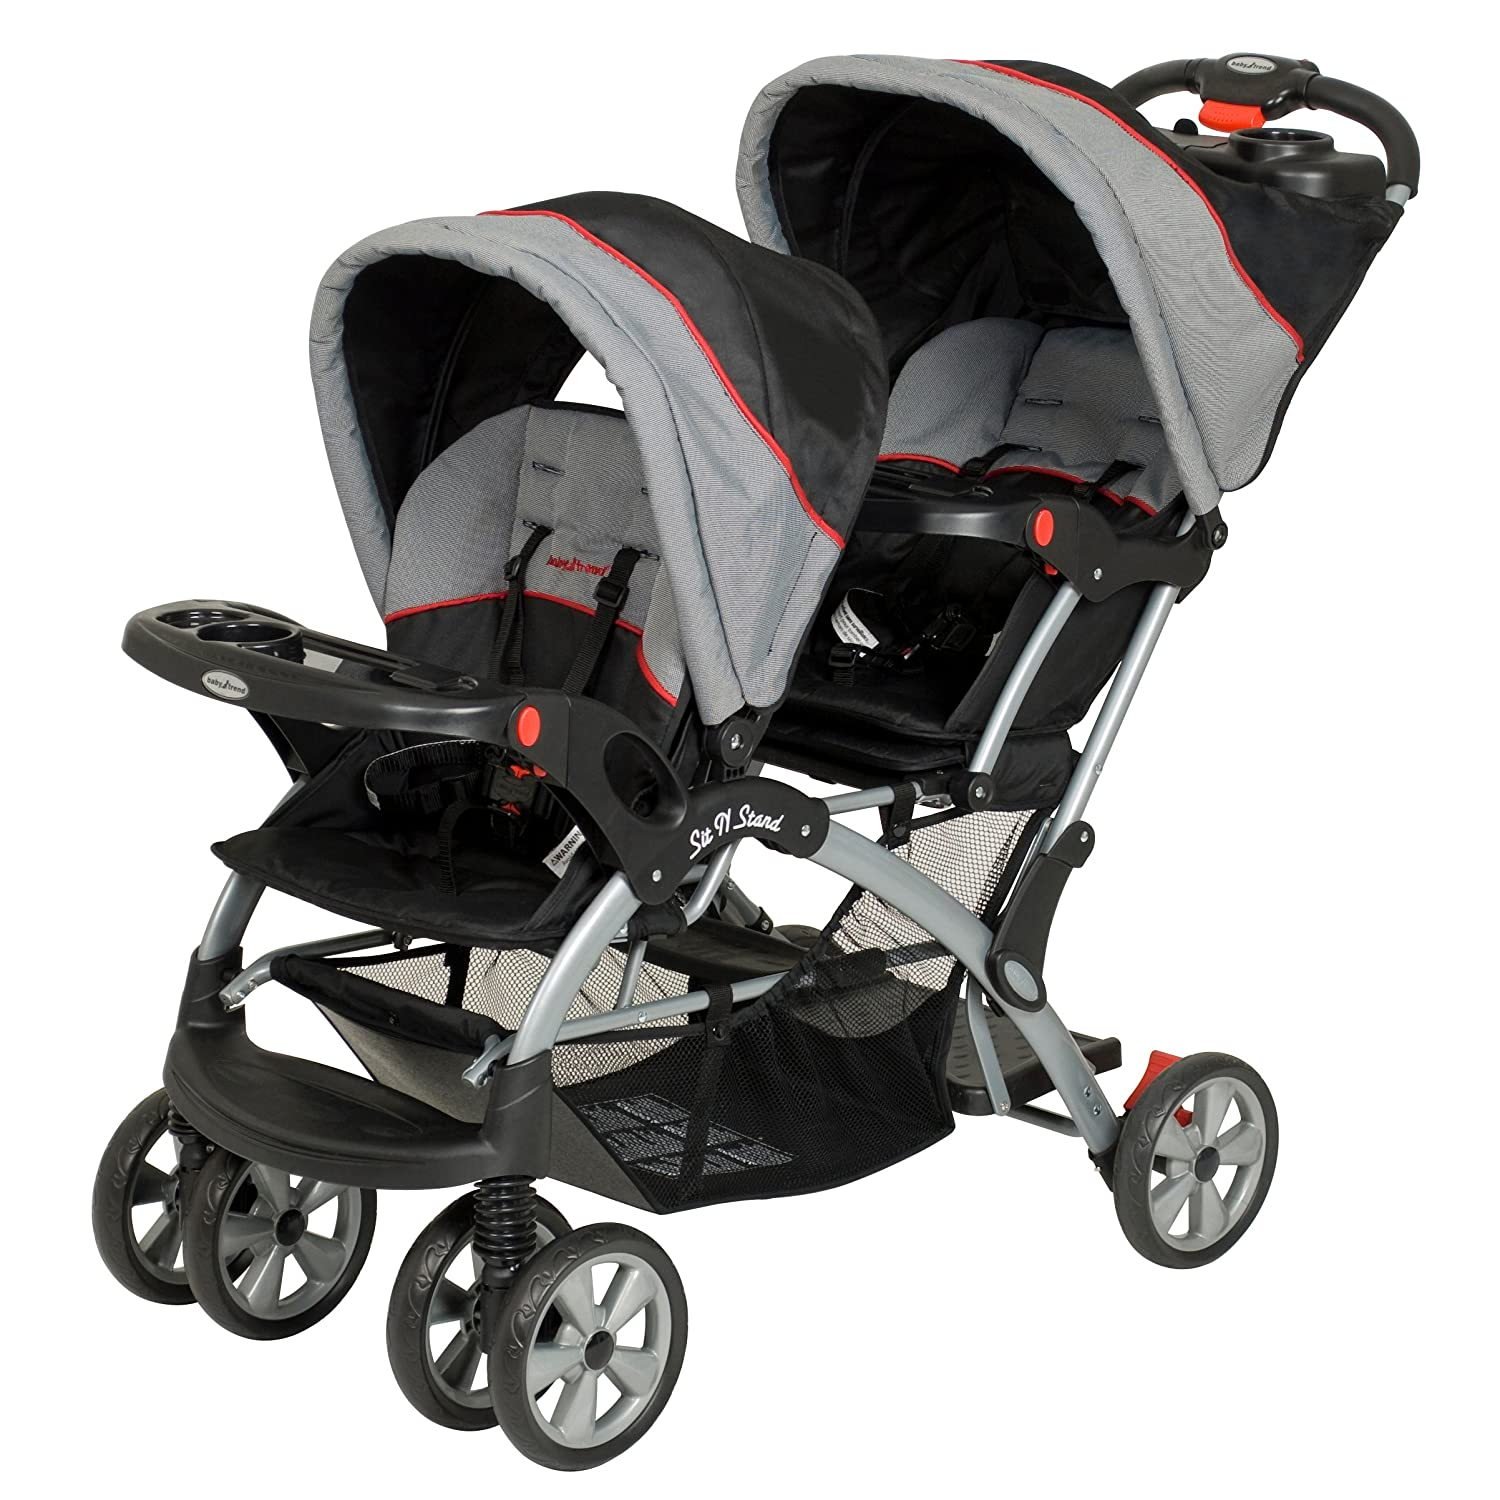 Double buggy for newborn and toddler